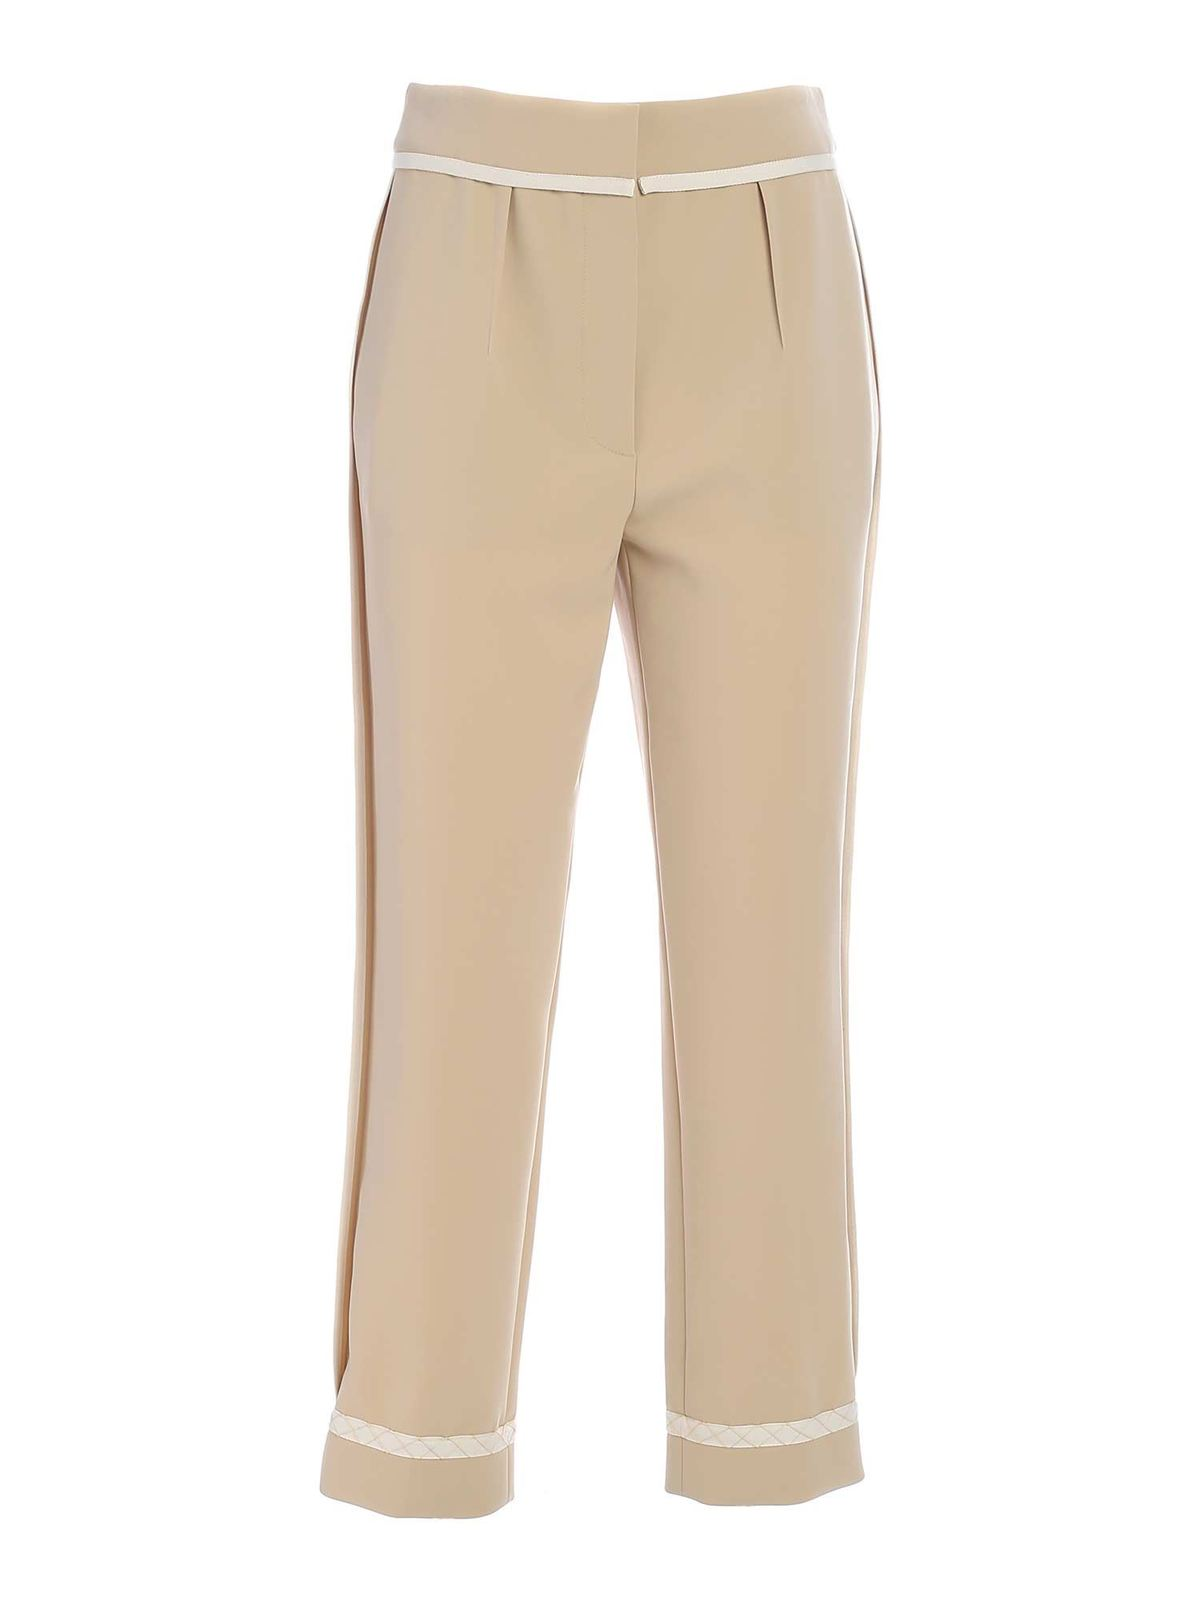 Moschino Linings CONTRASTING DETAILS PANTS IN BEIGE